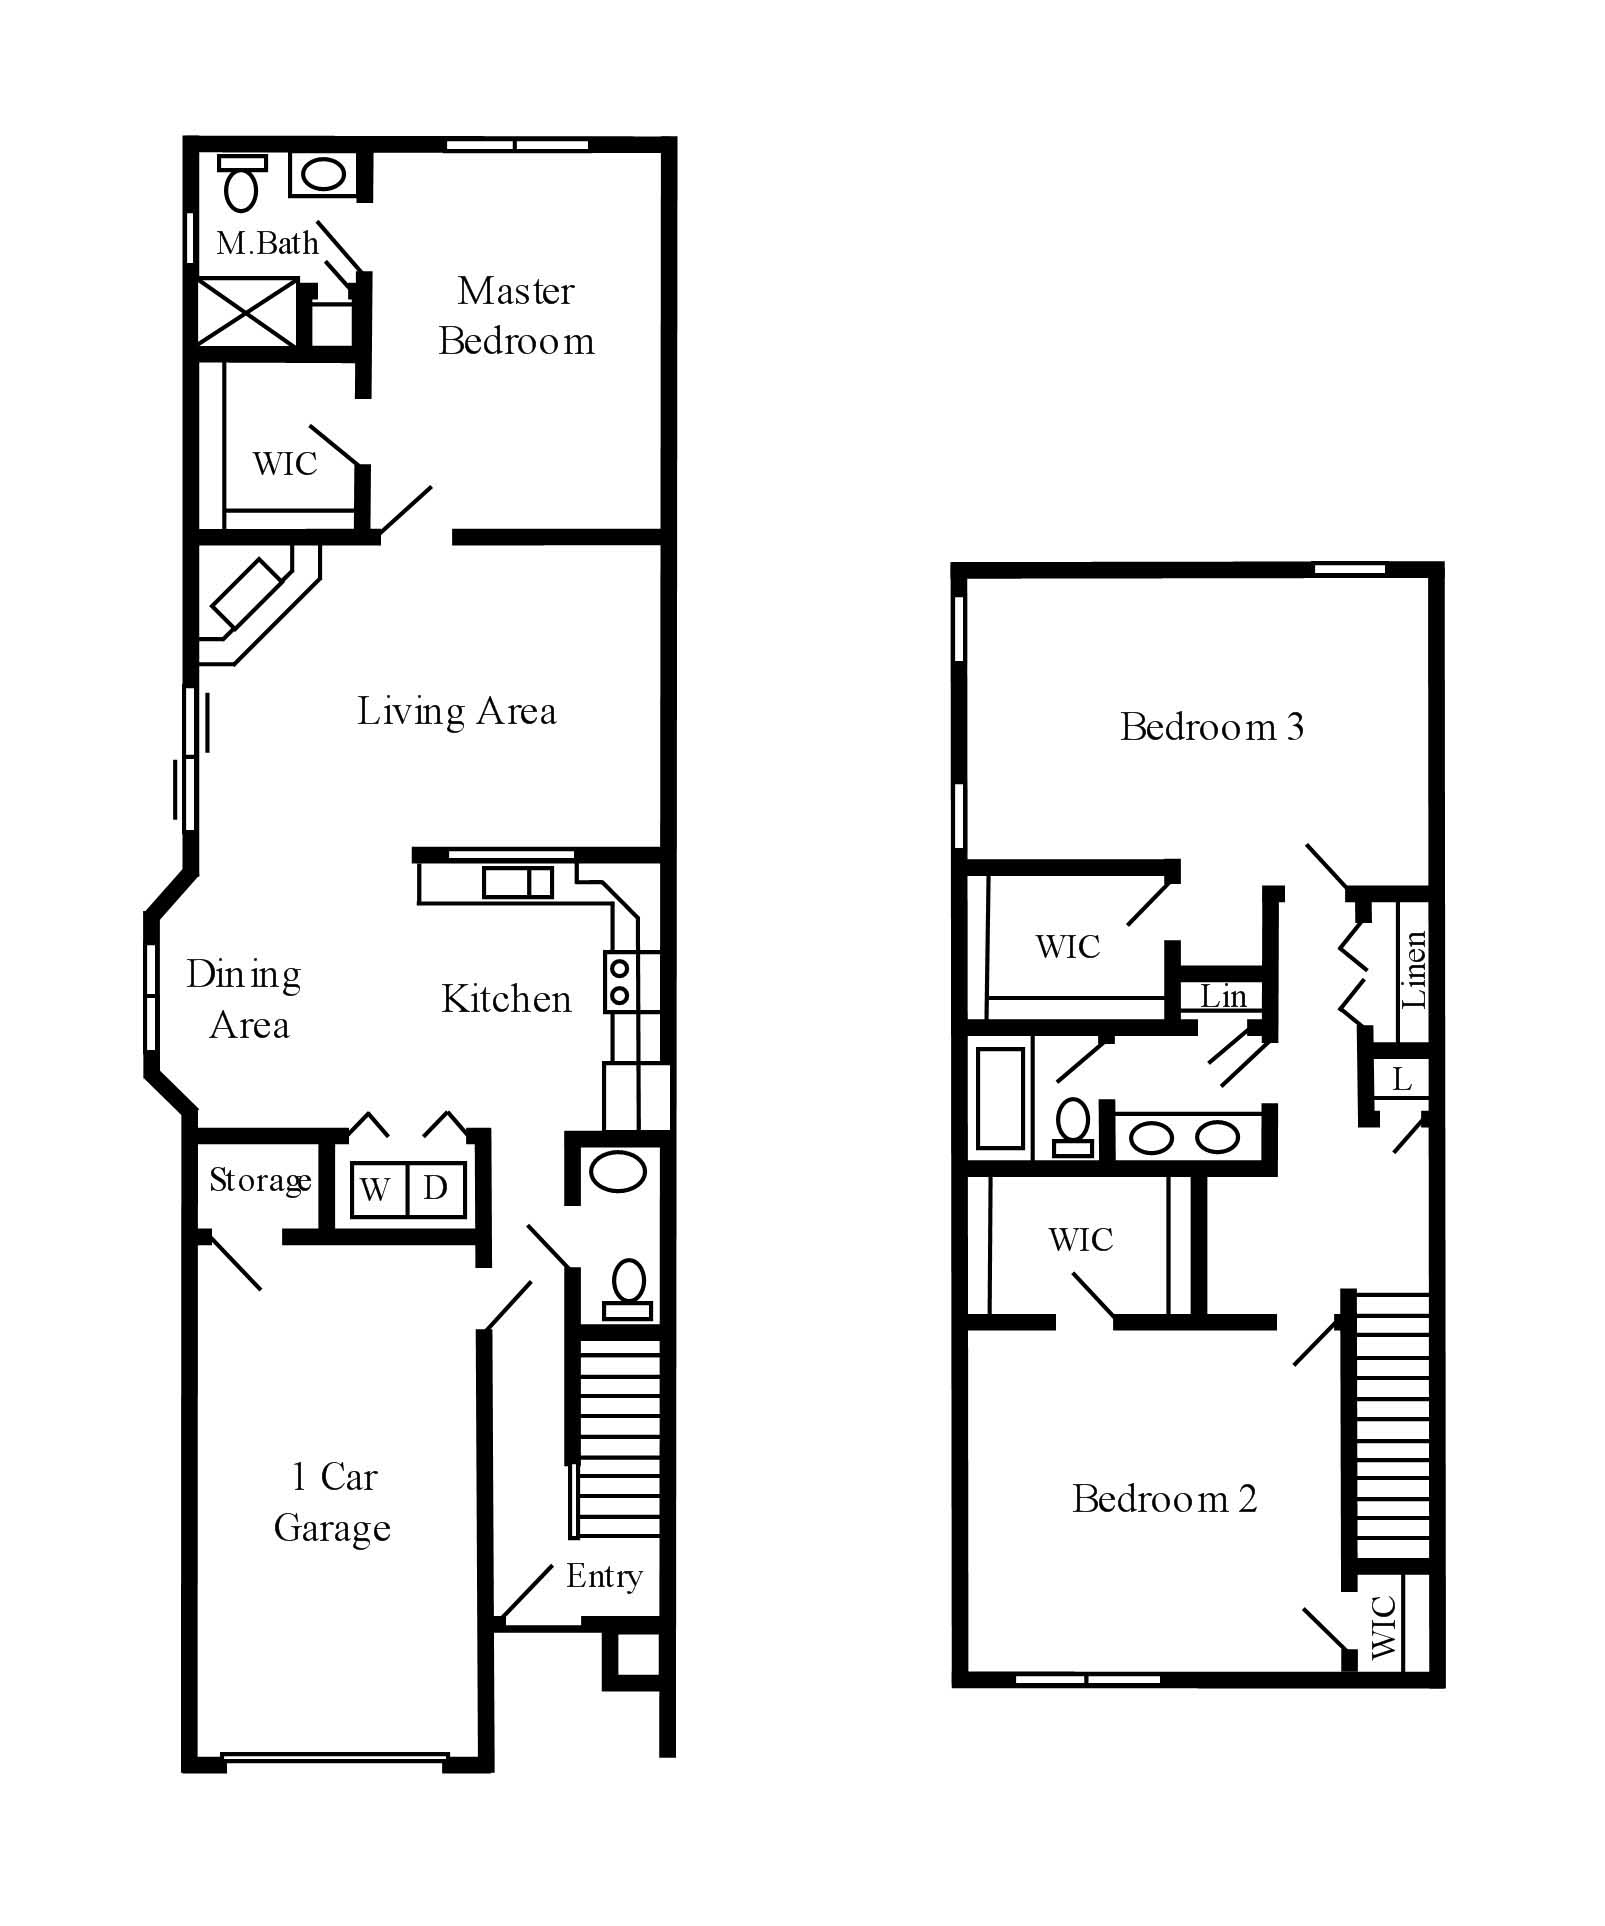 422564377510873641 as well Contemporary Loft Townhouse Vancouver Smart Design in addition 30165 besides Rj Taylor in addition Home Available Now At 4711 Coldstream Court 77479. on master bedroom house plans